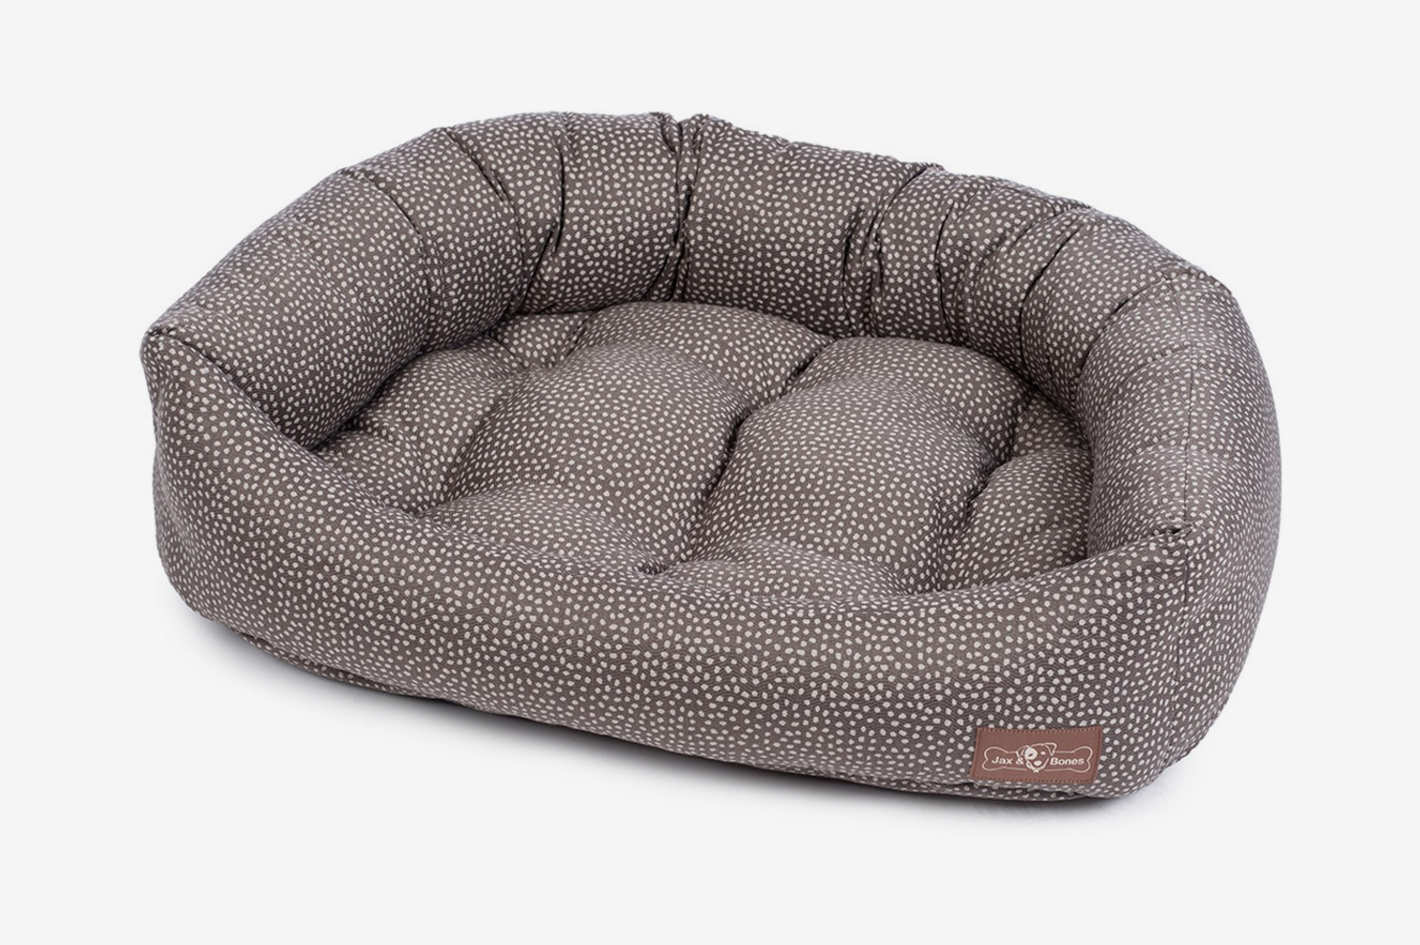 Best Dog Beds According To Dog Experts 2019